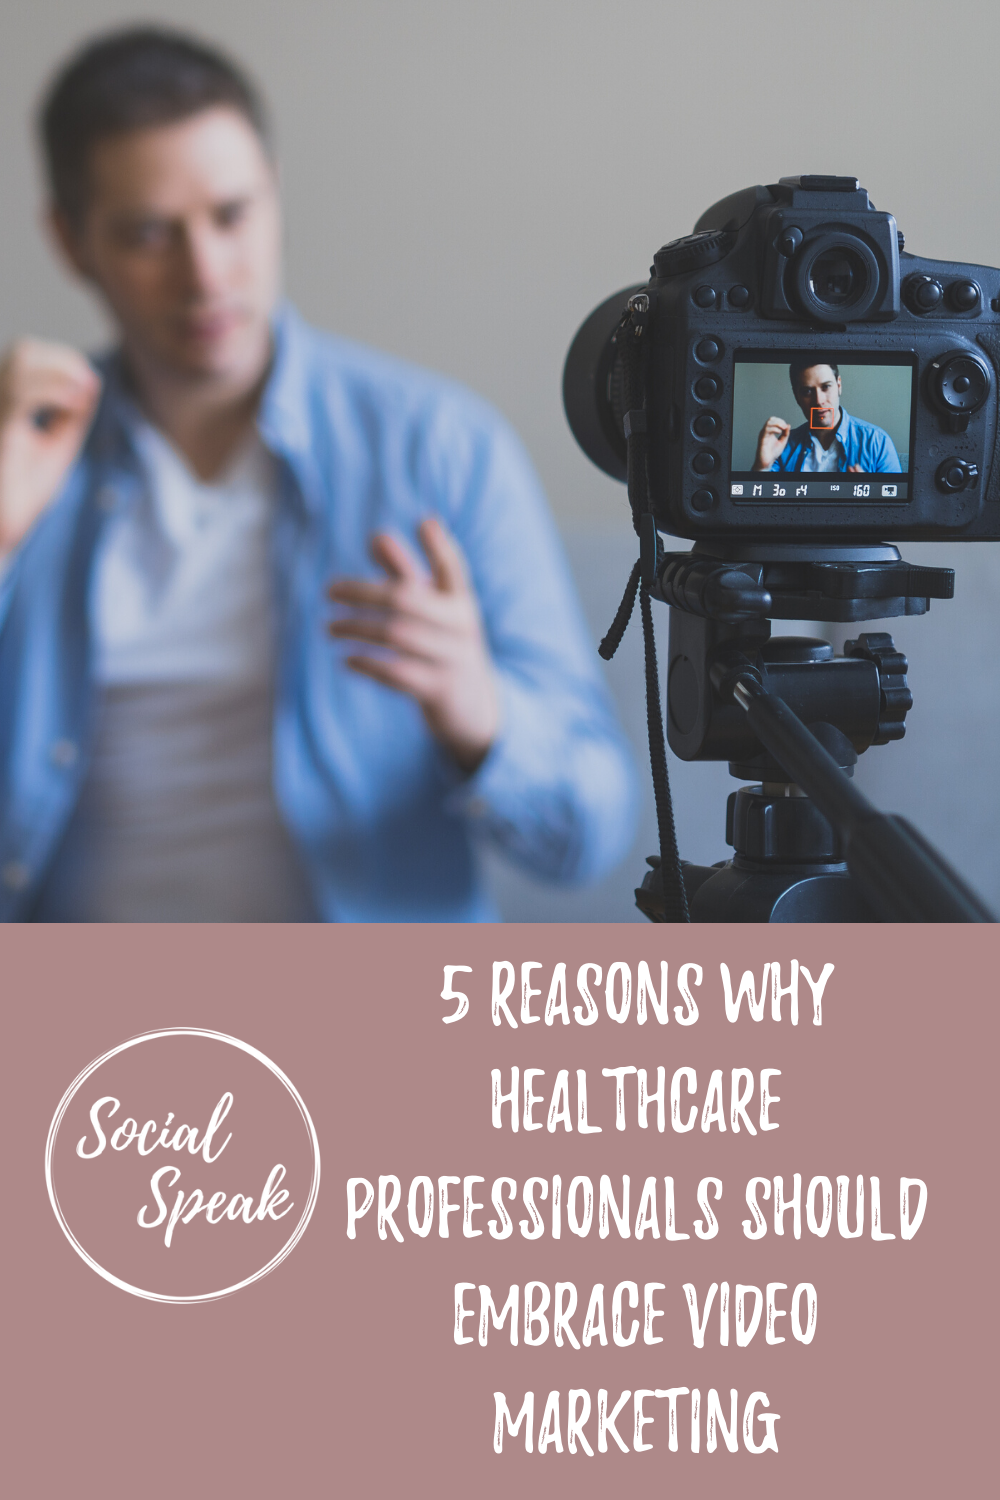 5 Reasons Why Healthcare Professionals Should Embrace Video Marketing